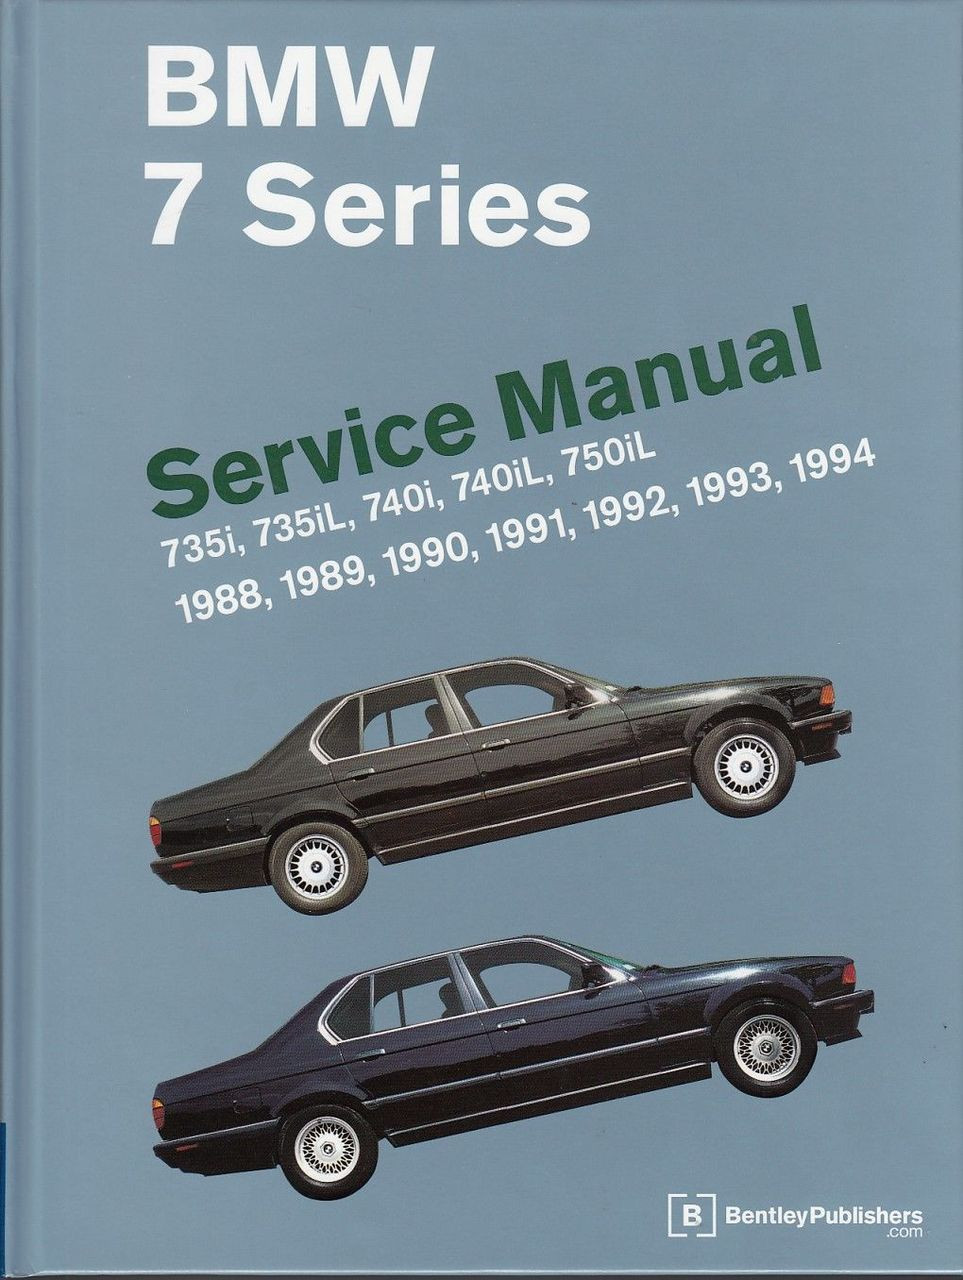 BMW 7 Series E32 735i, 735iL, 740i, 740iL, 750iL 1988 - 1994 Workshop Manual